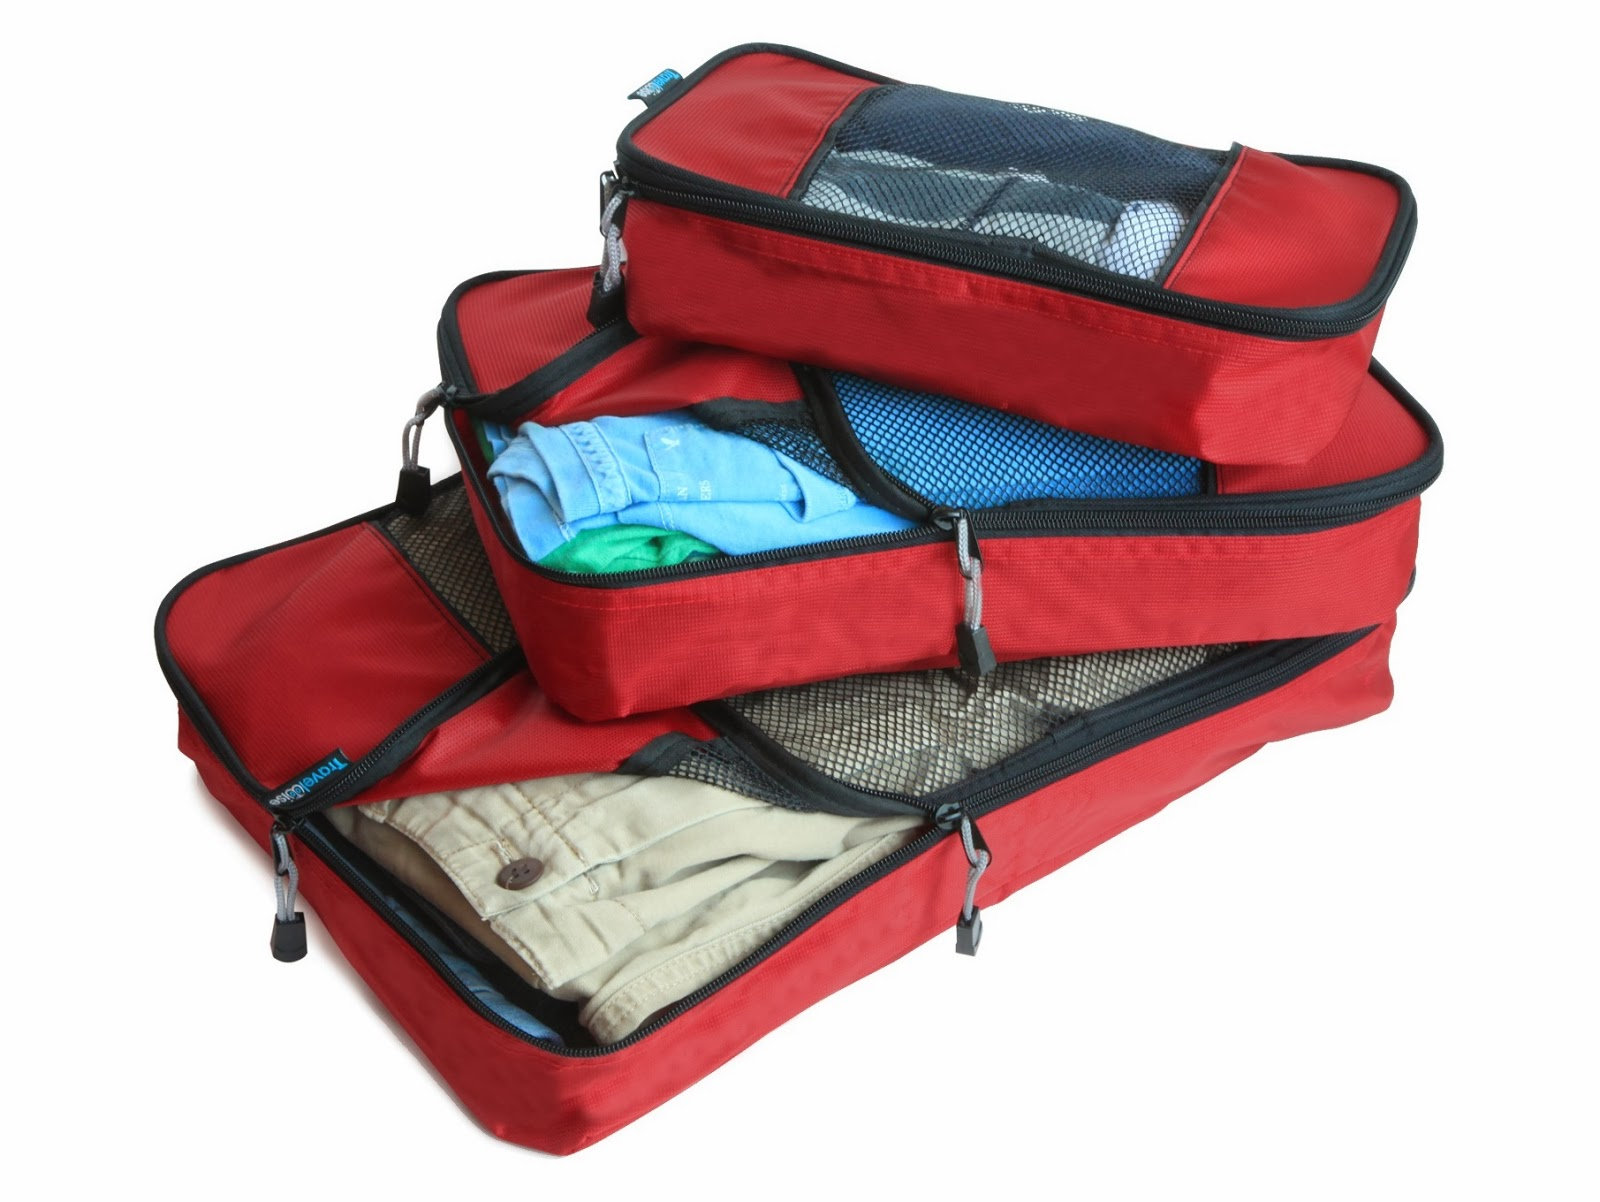 EatSmart TravelWise Packing Cubes